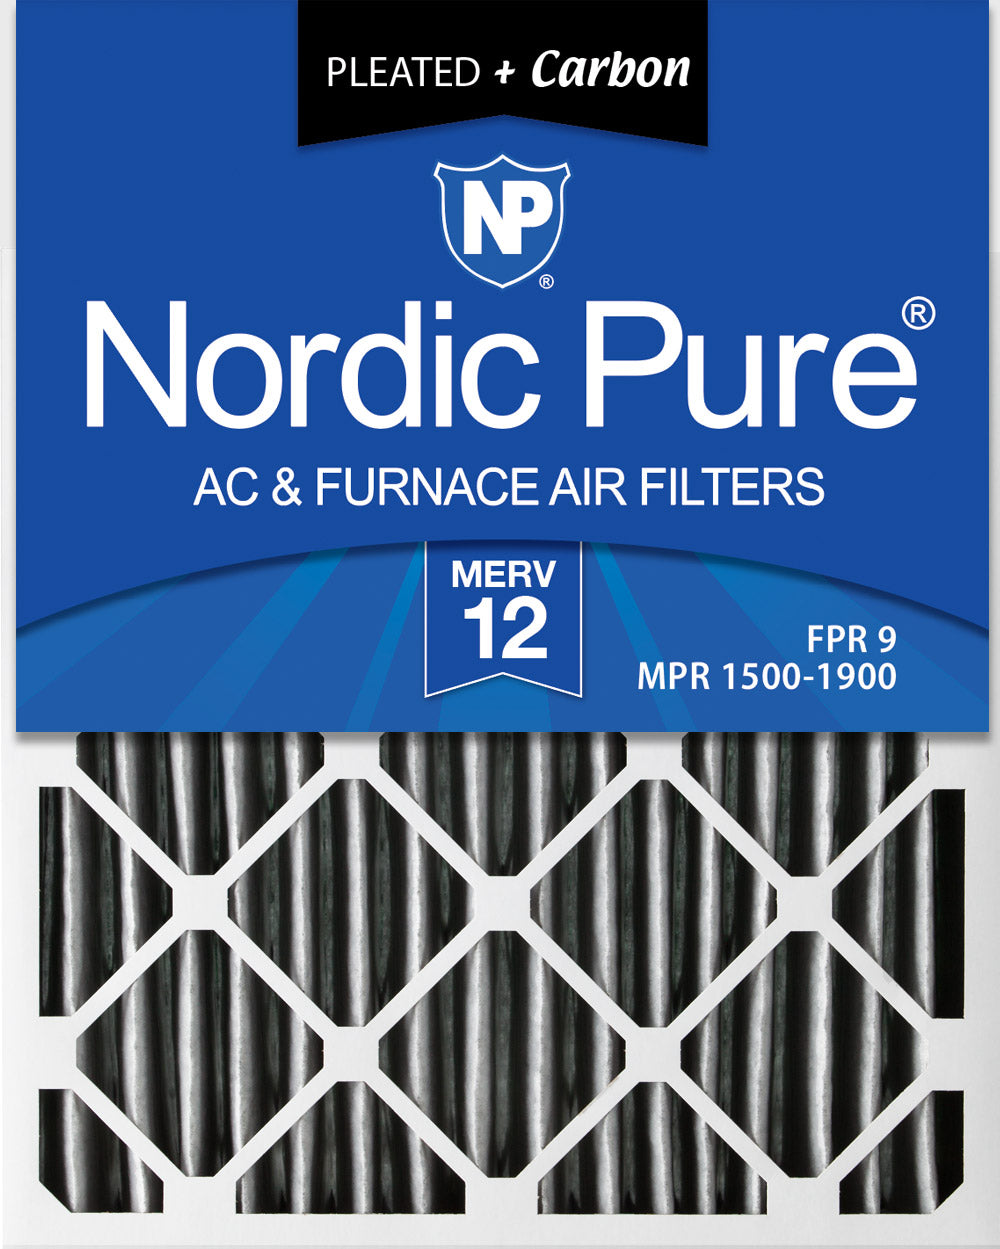 20x25x2 Furnace Air Filters MERV 12 Pleated Plus Carbon 12 Pack